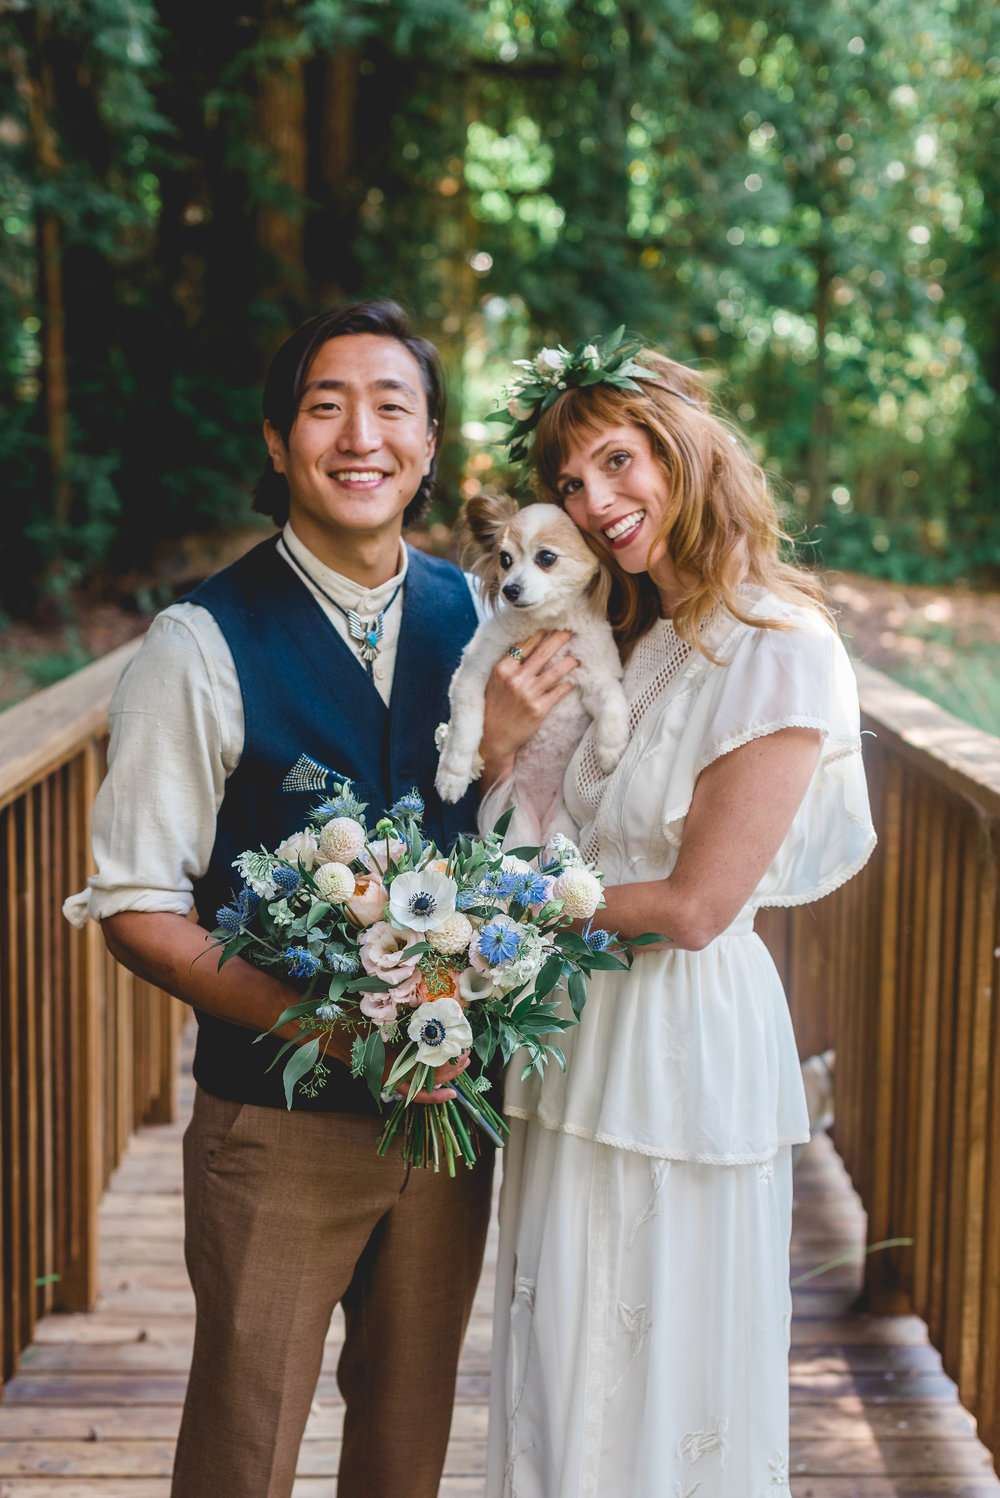 An intimate wedding in the Bay area: 4 hours | One Photographer